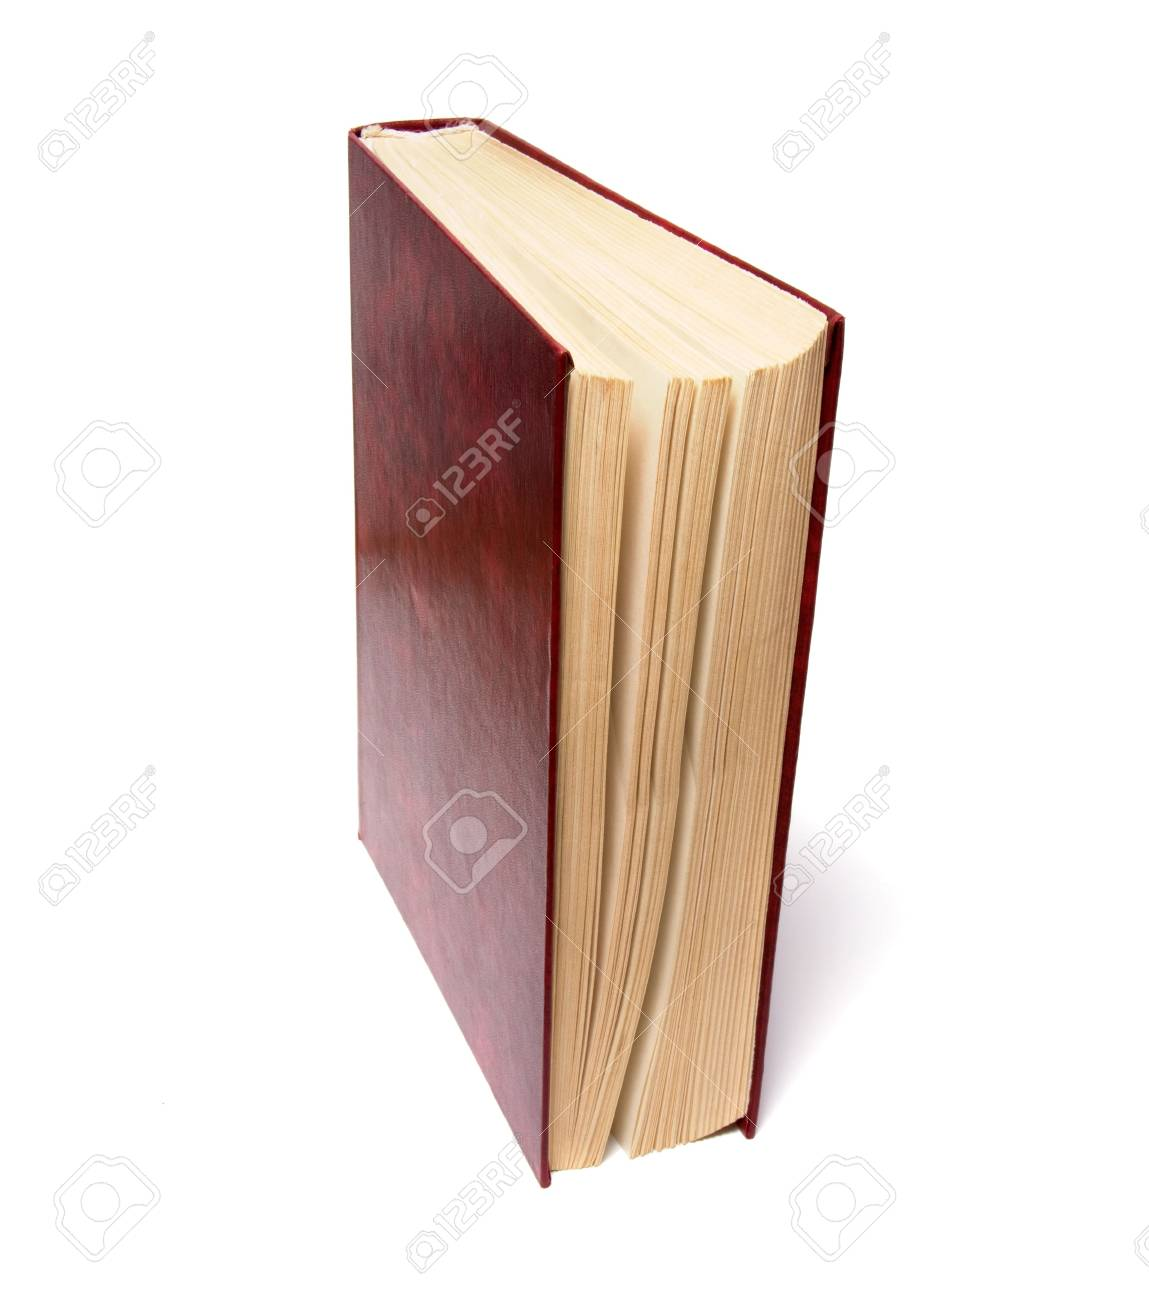 single book isolated on the white background Stock Photo - 3863566